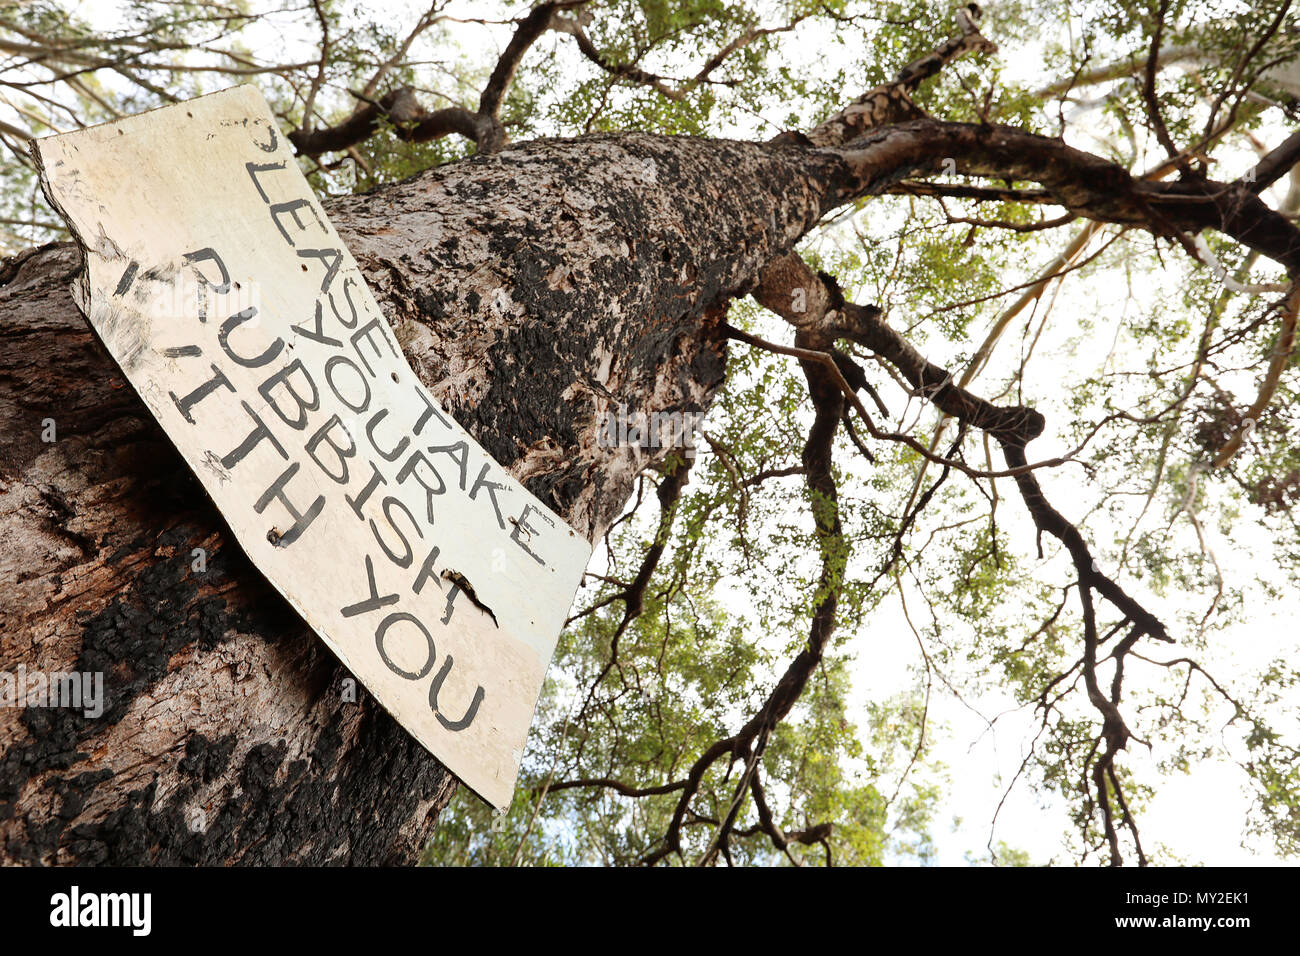 multiple views of an old worn sign post instructing campers fishermen bush walkers hikers to take responsibility for removing all waste trash rubbish  - Stock Image